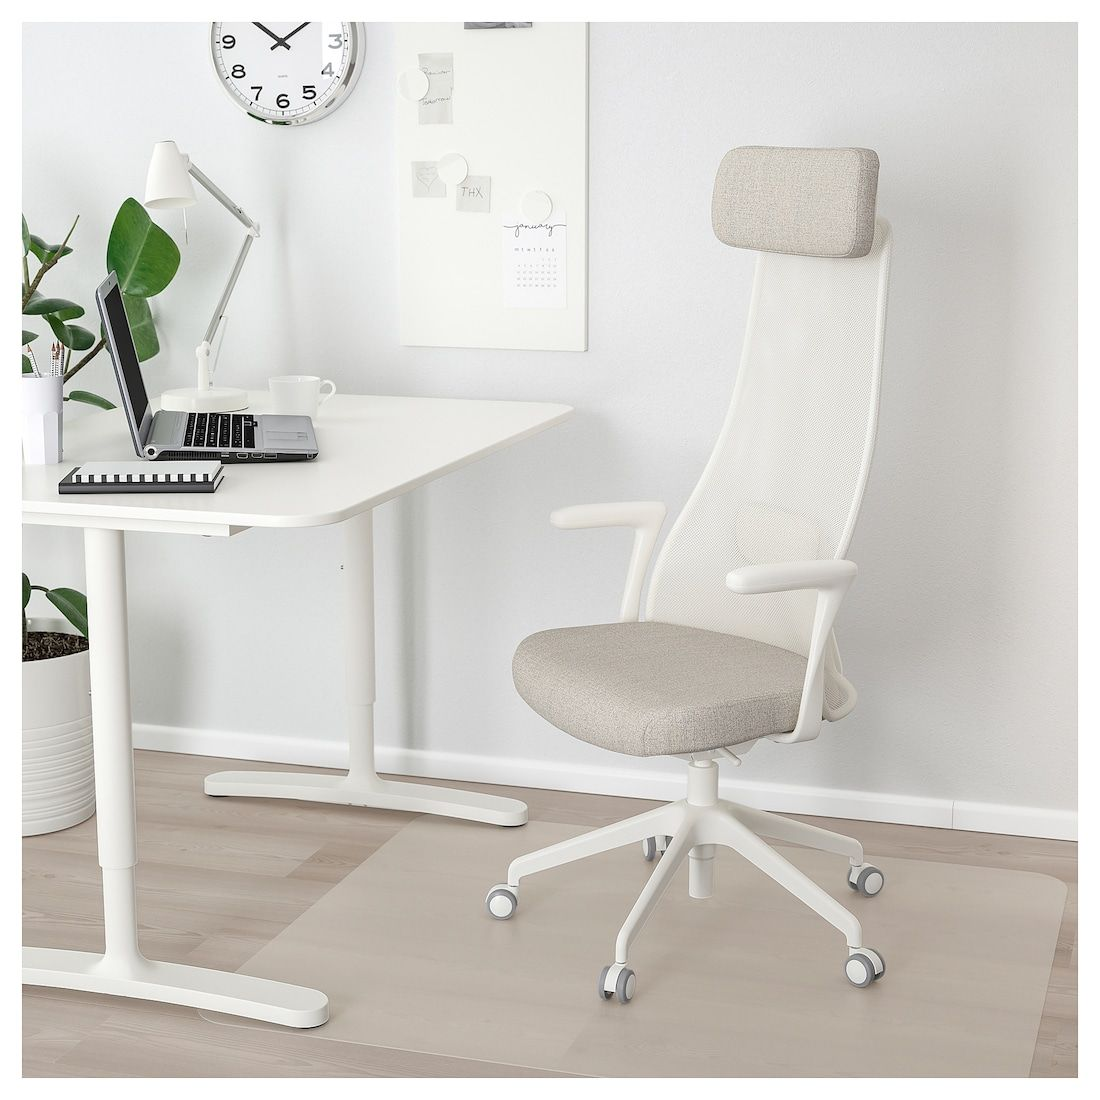 Ikea Chefsessel JÄrvfjÄllet Office Chair With Armrests, Gunnared Beige, White - Ikea | Office Chair, Chair, Ikea